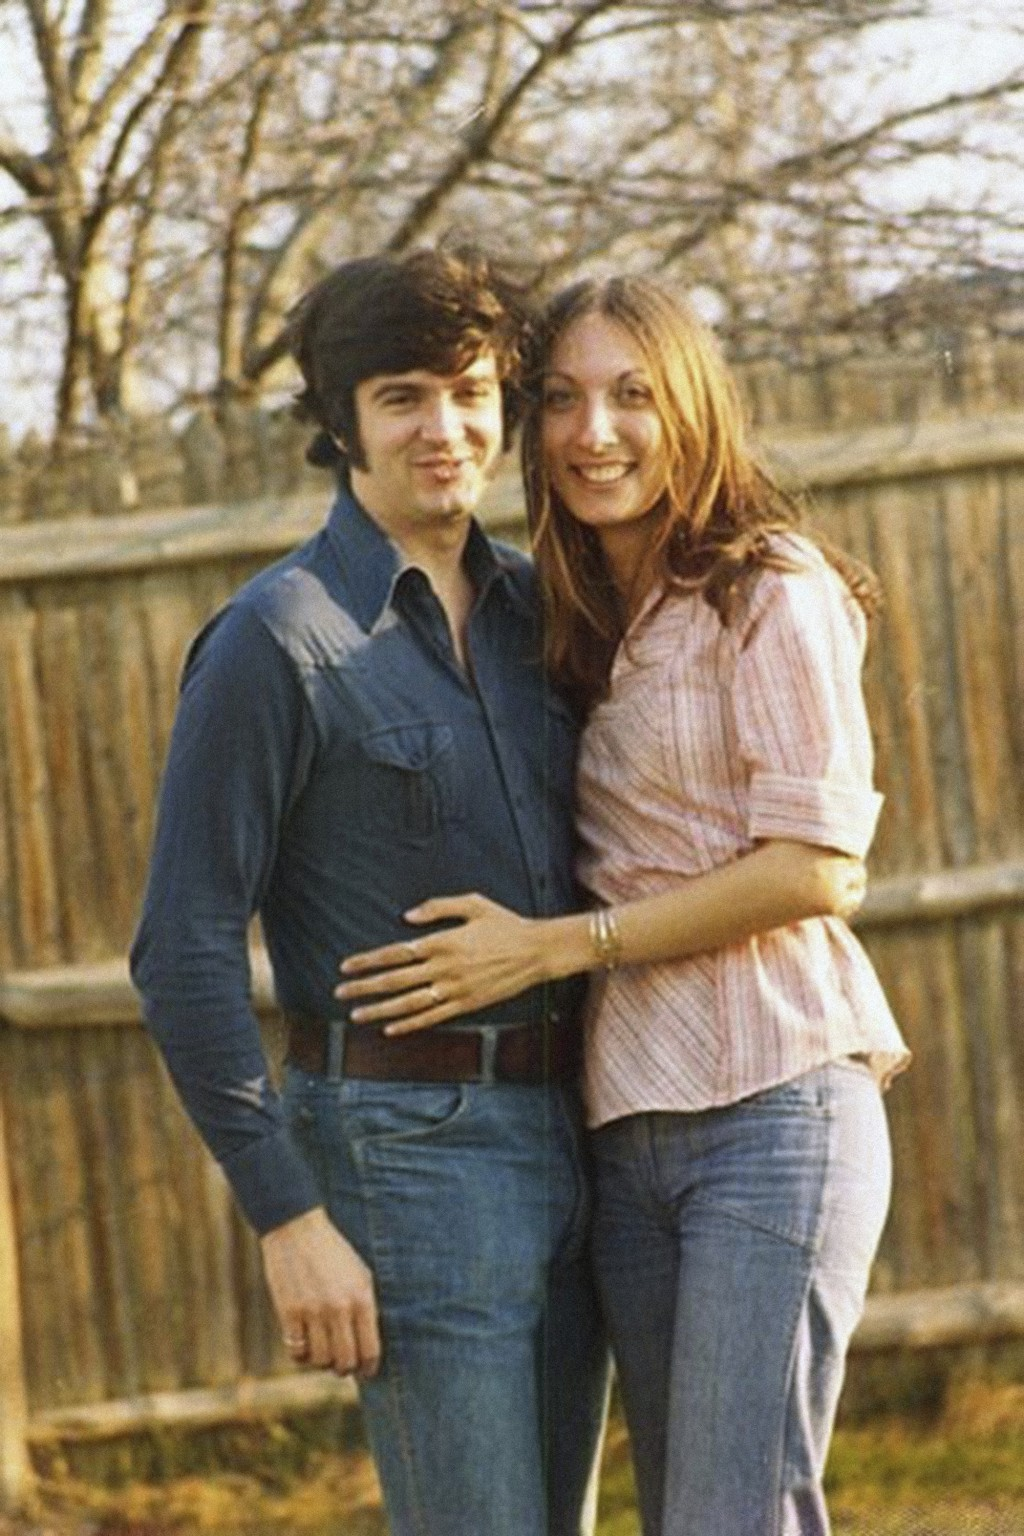 This 1976 family photo shows Isaiah Kuperstein and his future wife, Elana. Kuperstein died from COVID-19 on April 4, 2020. He was 70. (Kuperstein fami...